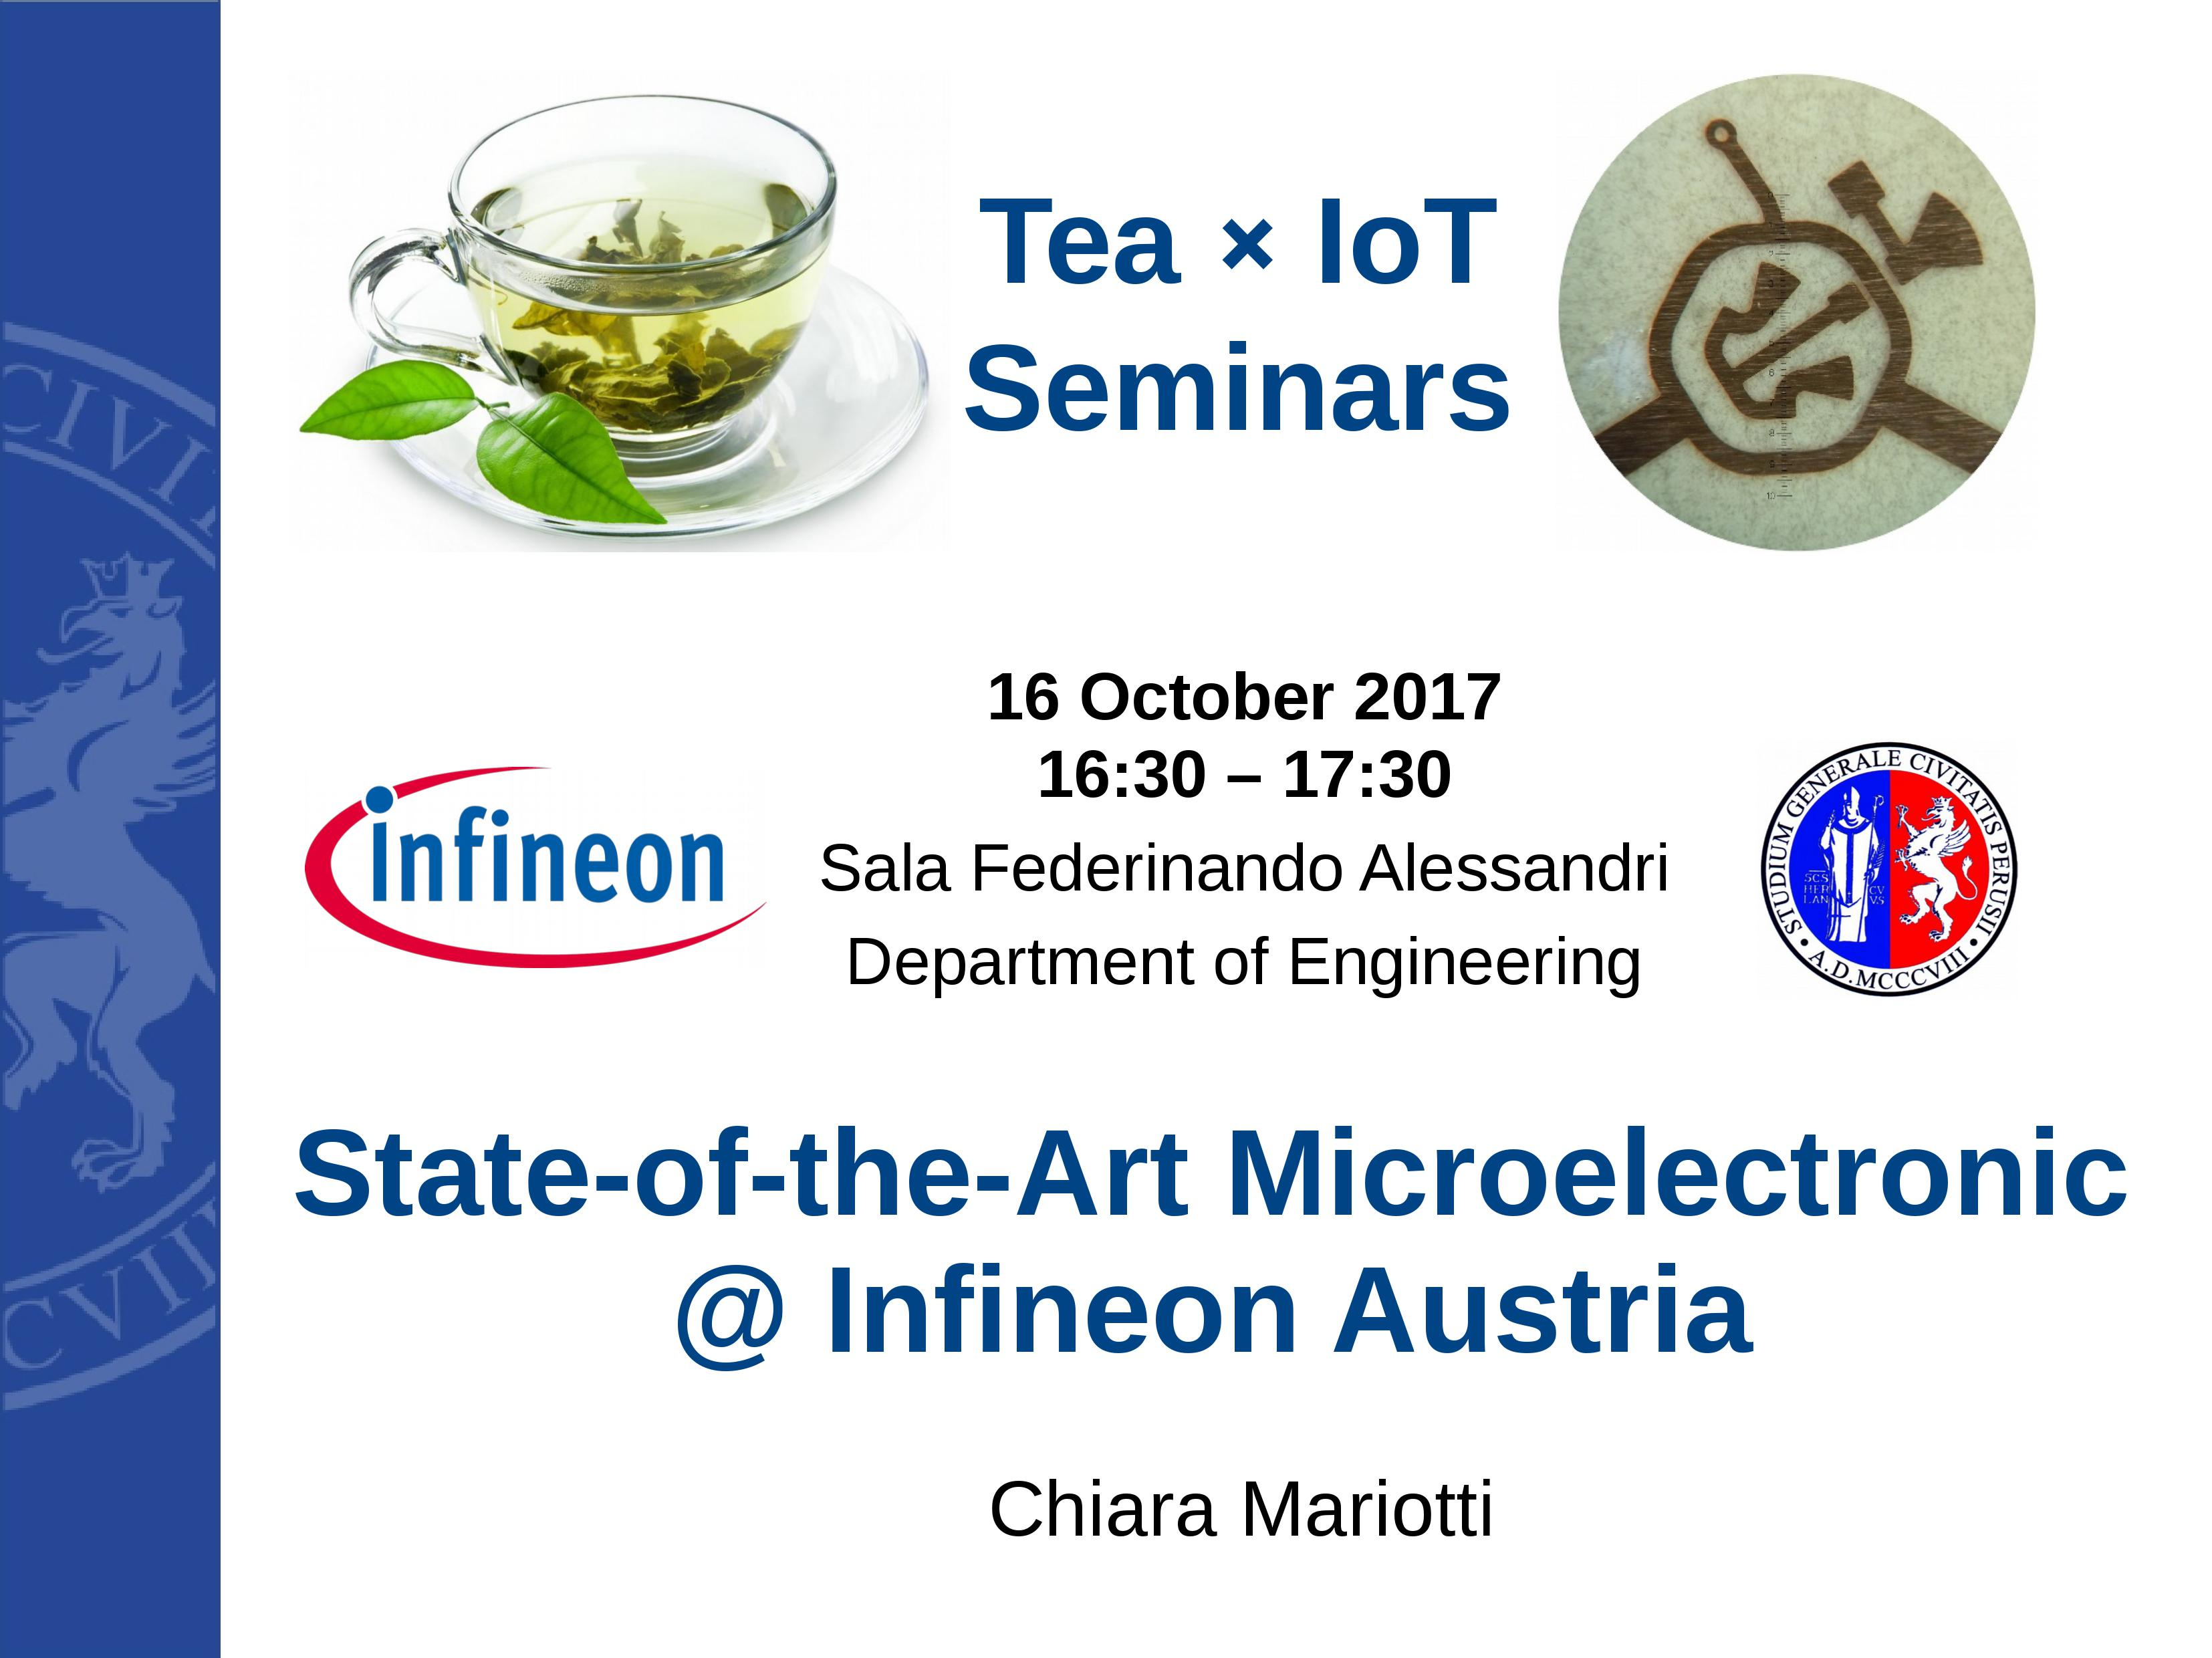 State-of-the-Art Microelectronic @ Infineon Austria